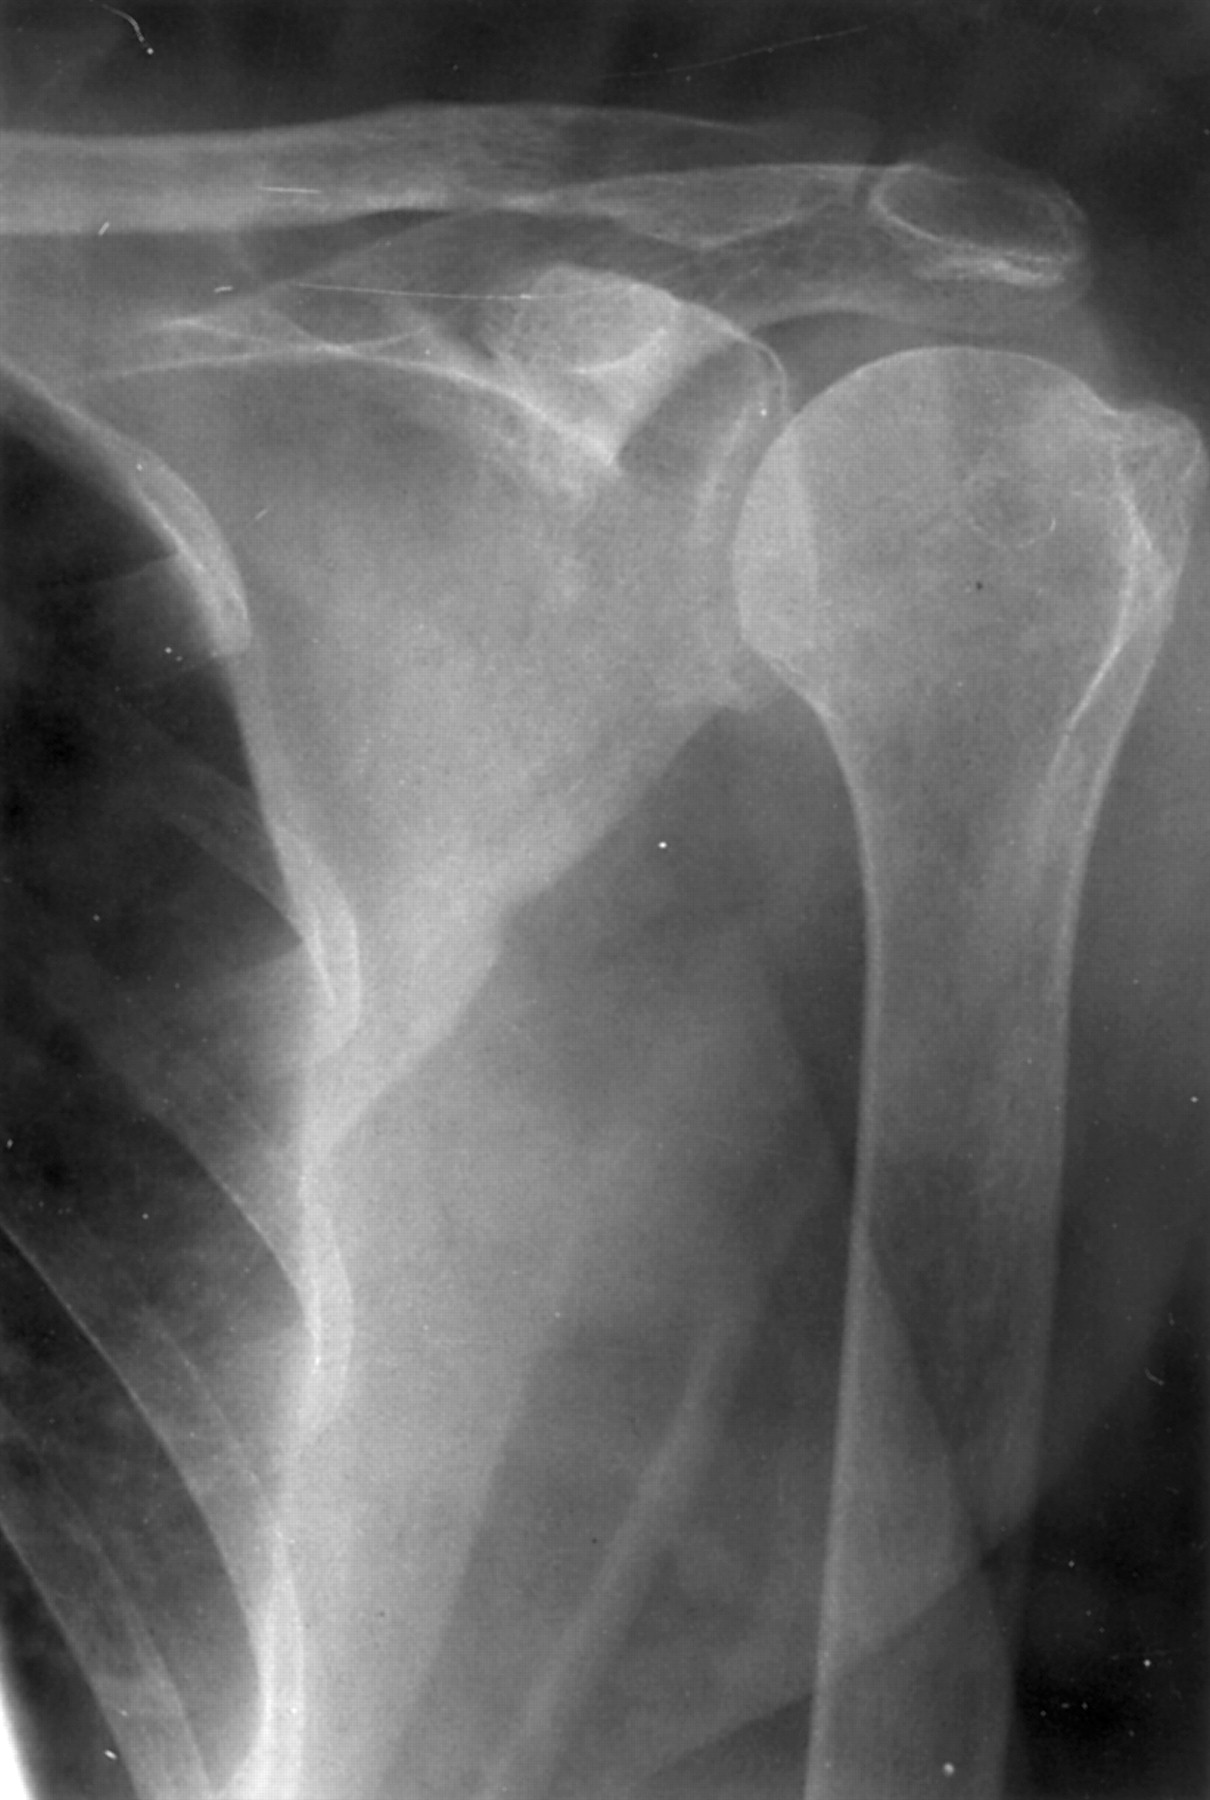 Relation Of Glenohumeral And Acromioclavicular Joint Destruction In Rheumatoid Shoulder A 15 Year Follow Up Study Annals Of The Rheumatic Diseases